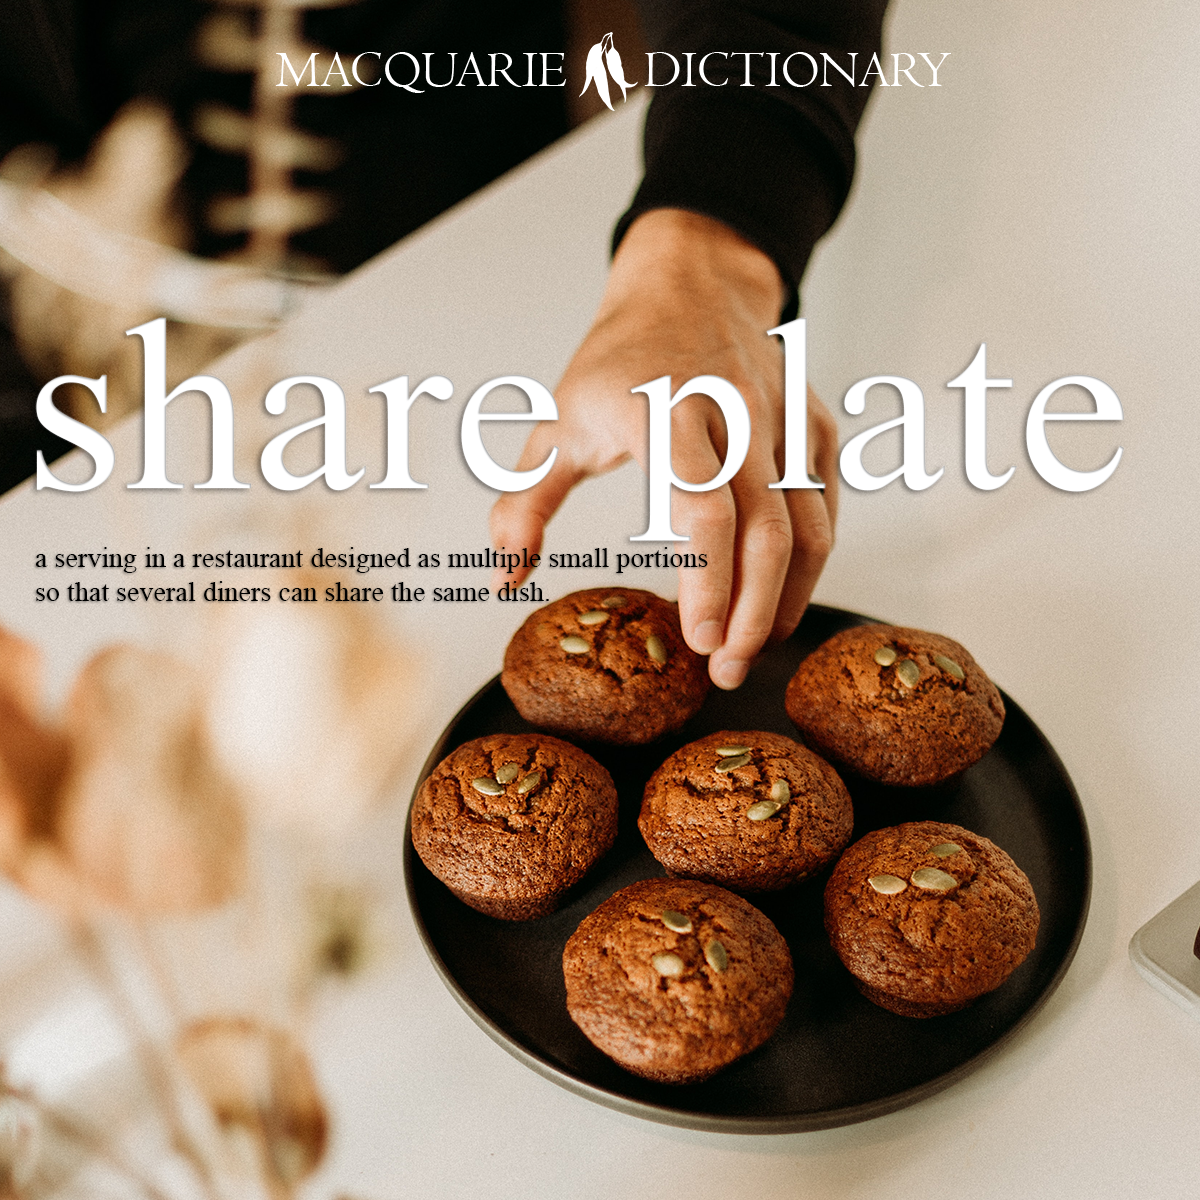 share plate - a serving in a restaurant designed as multiple small portions so that several diners can share the same dish.